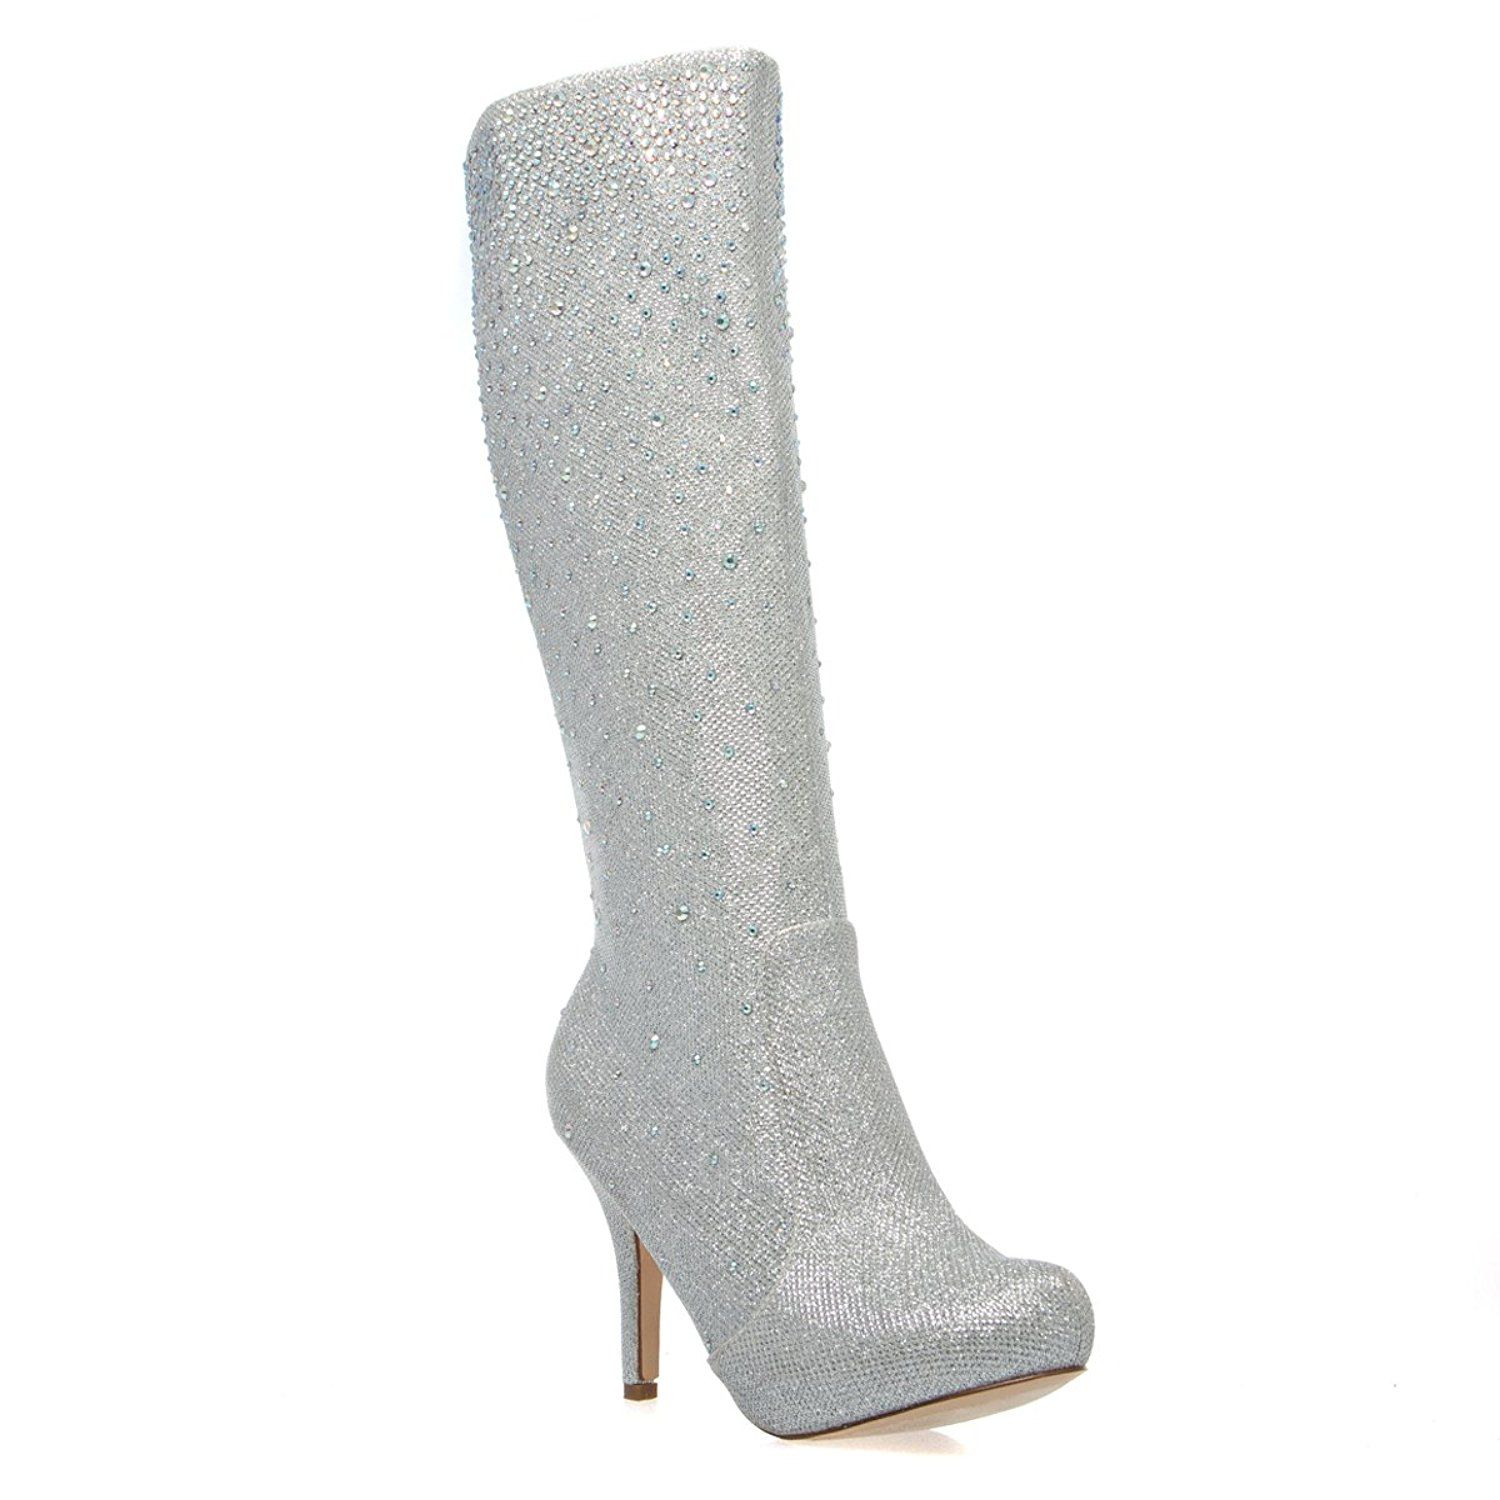 Womens 23-ROBIN98 Closed Toe Rhinestone Knee High Stiletto Heel Platform Boot Shoes Silver Glitter